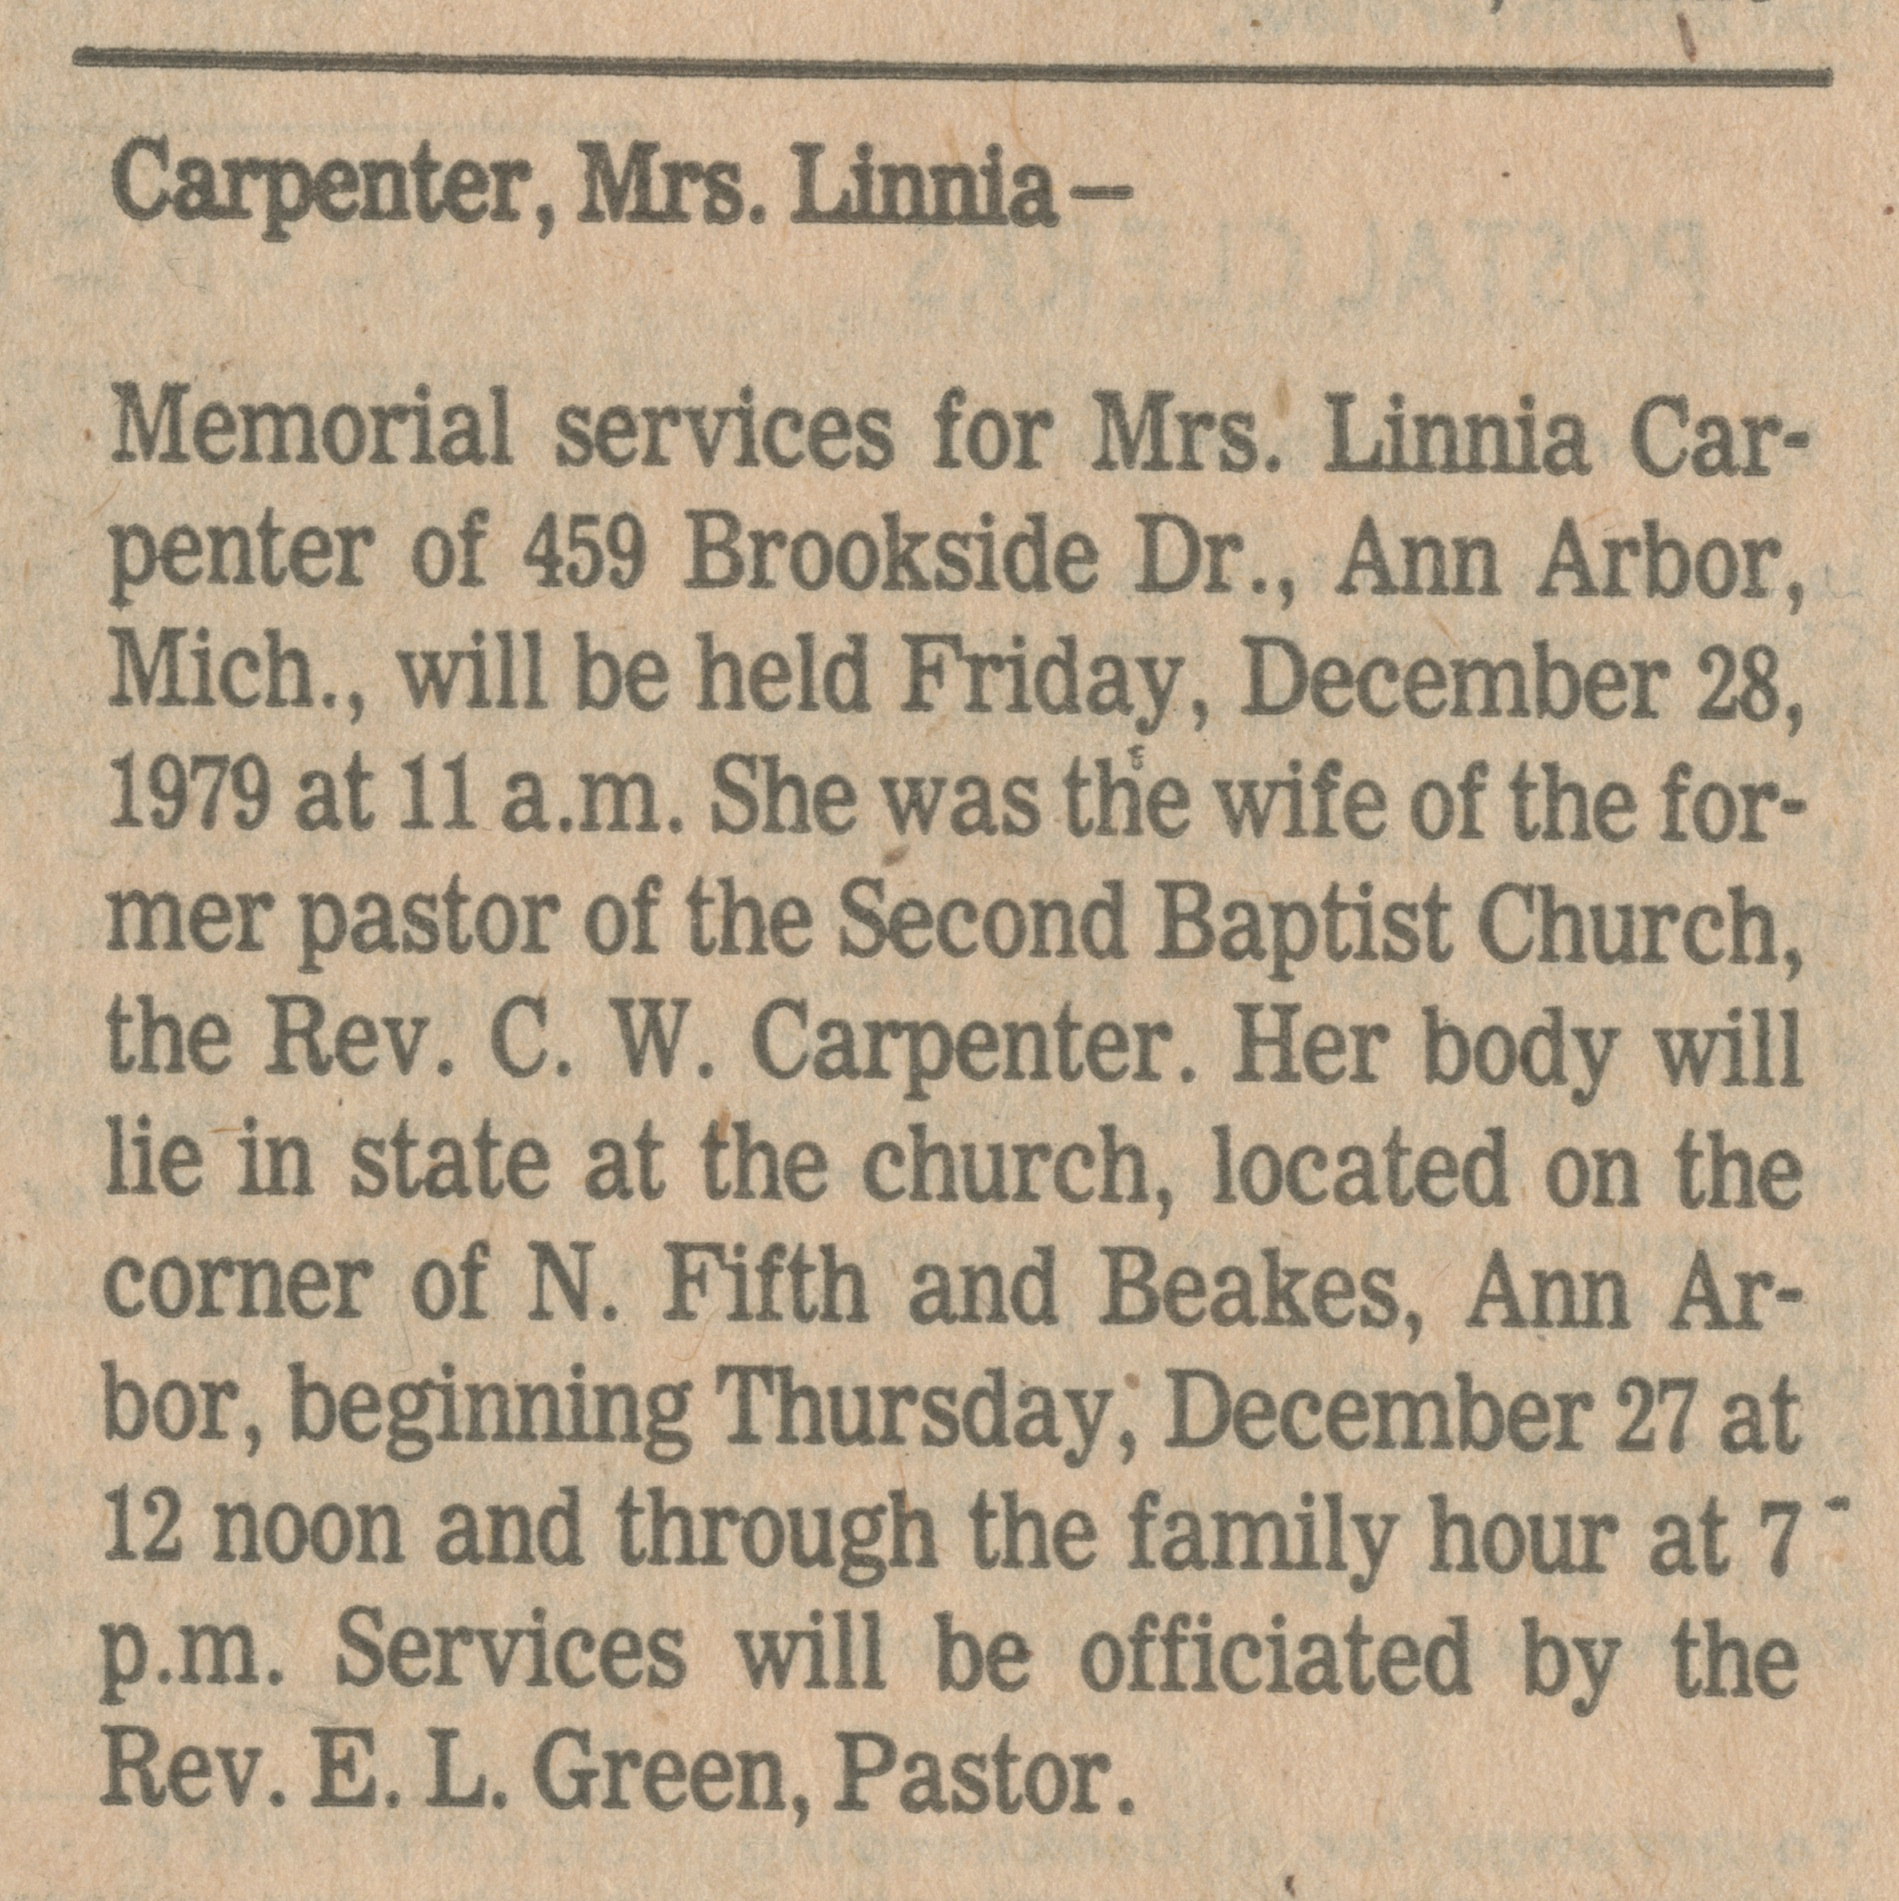 Carpenter, Mrs. Linnia image